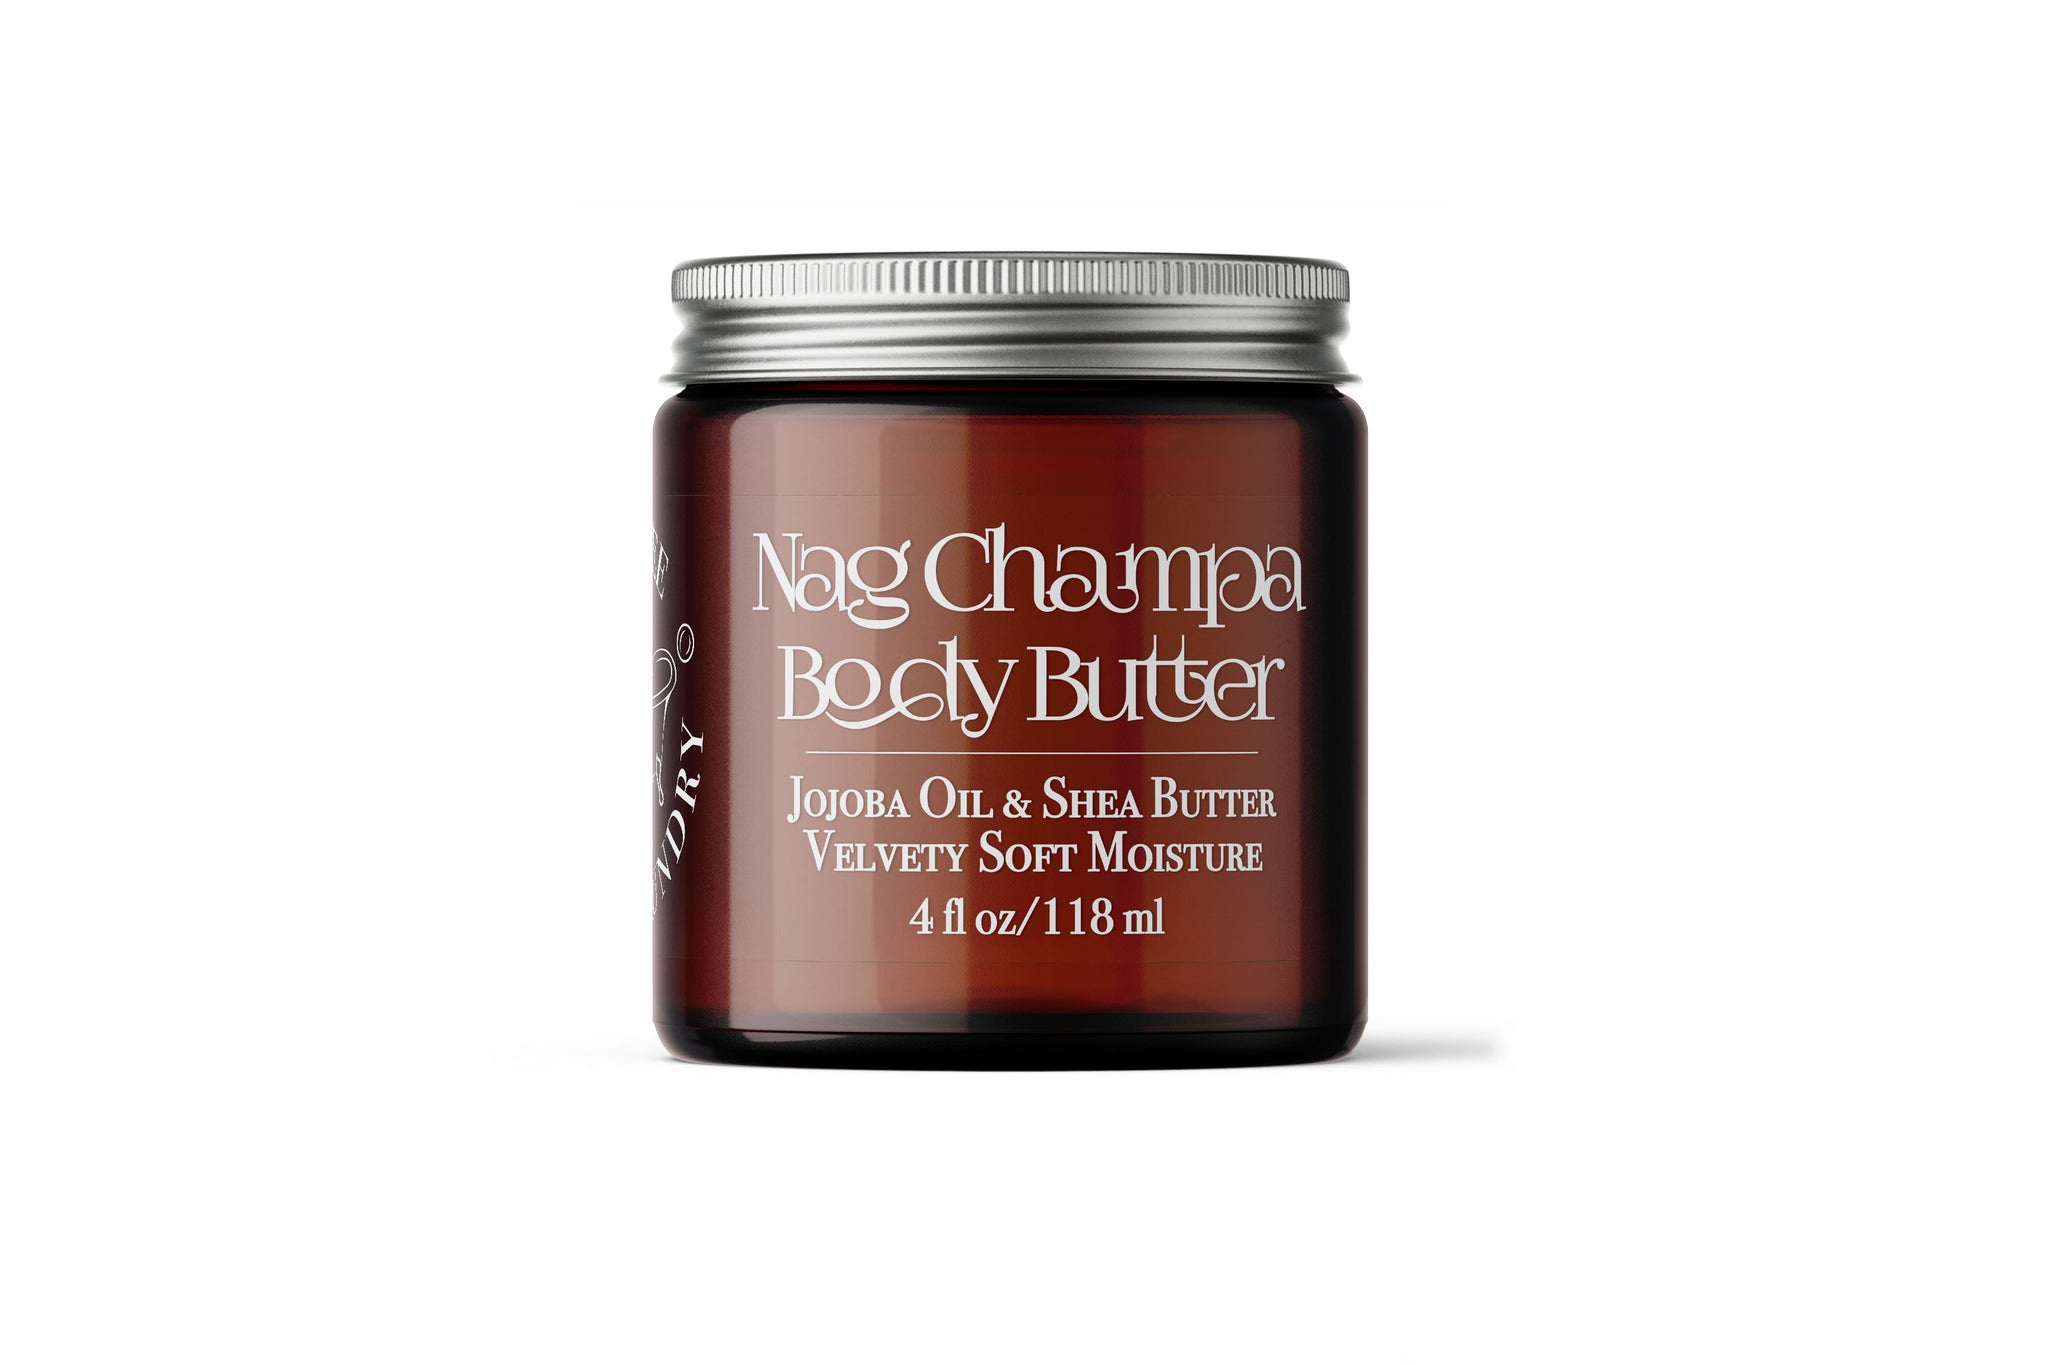 Nag Champa Body Butter - 4 oz.